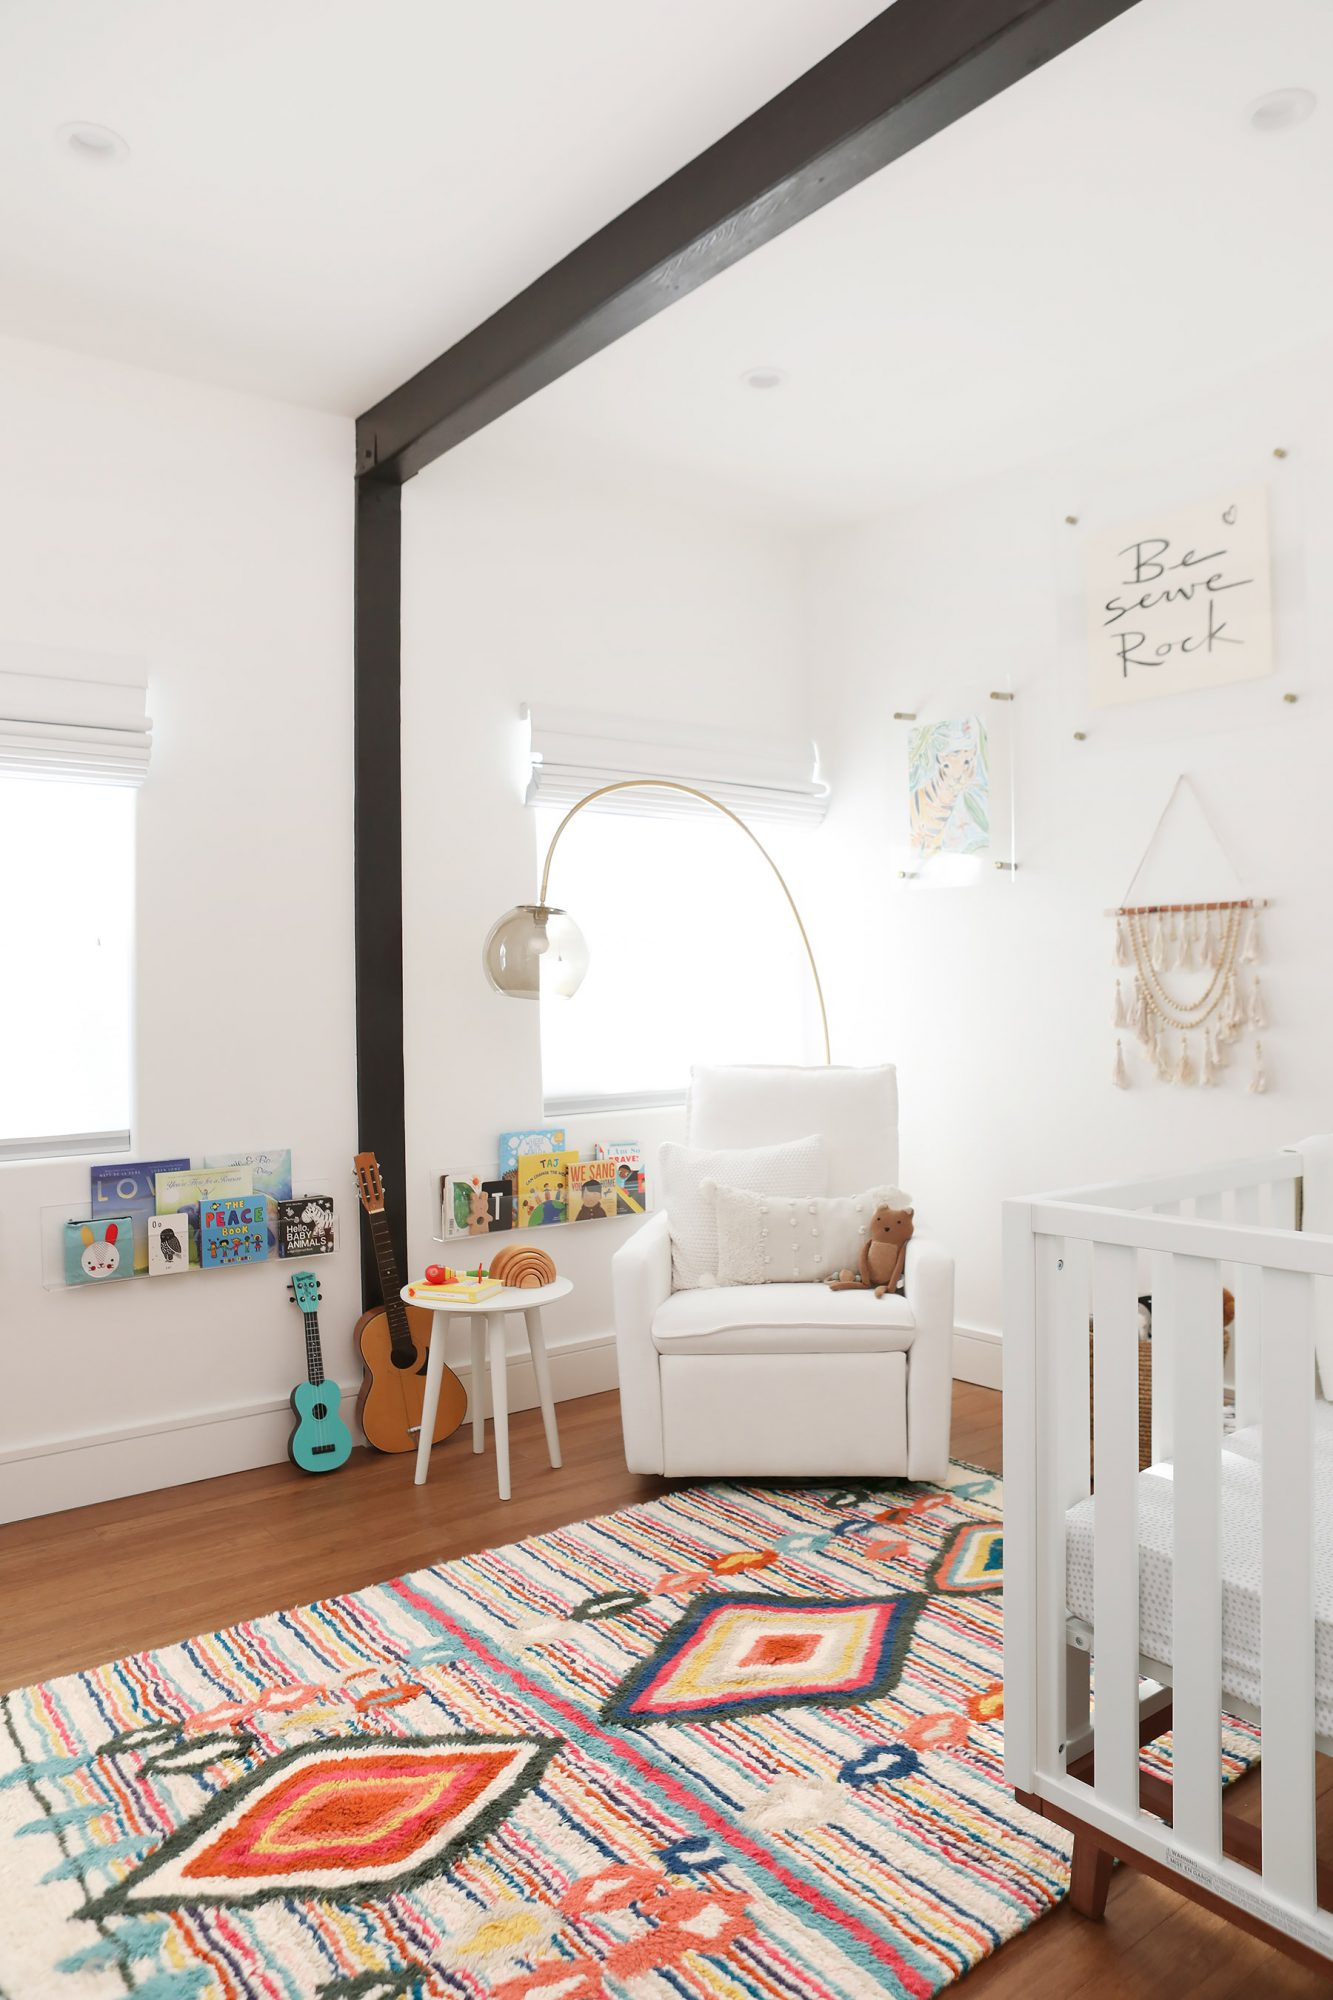 Michael Franti - Pottery Barn Baby NurseryCredit: Pottery Barn Kids